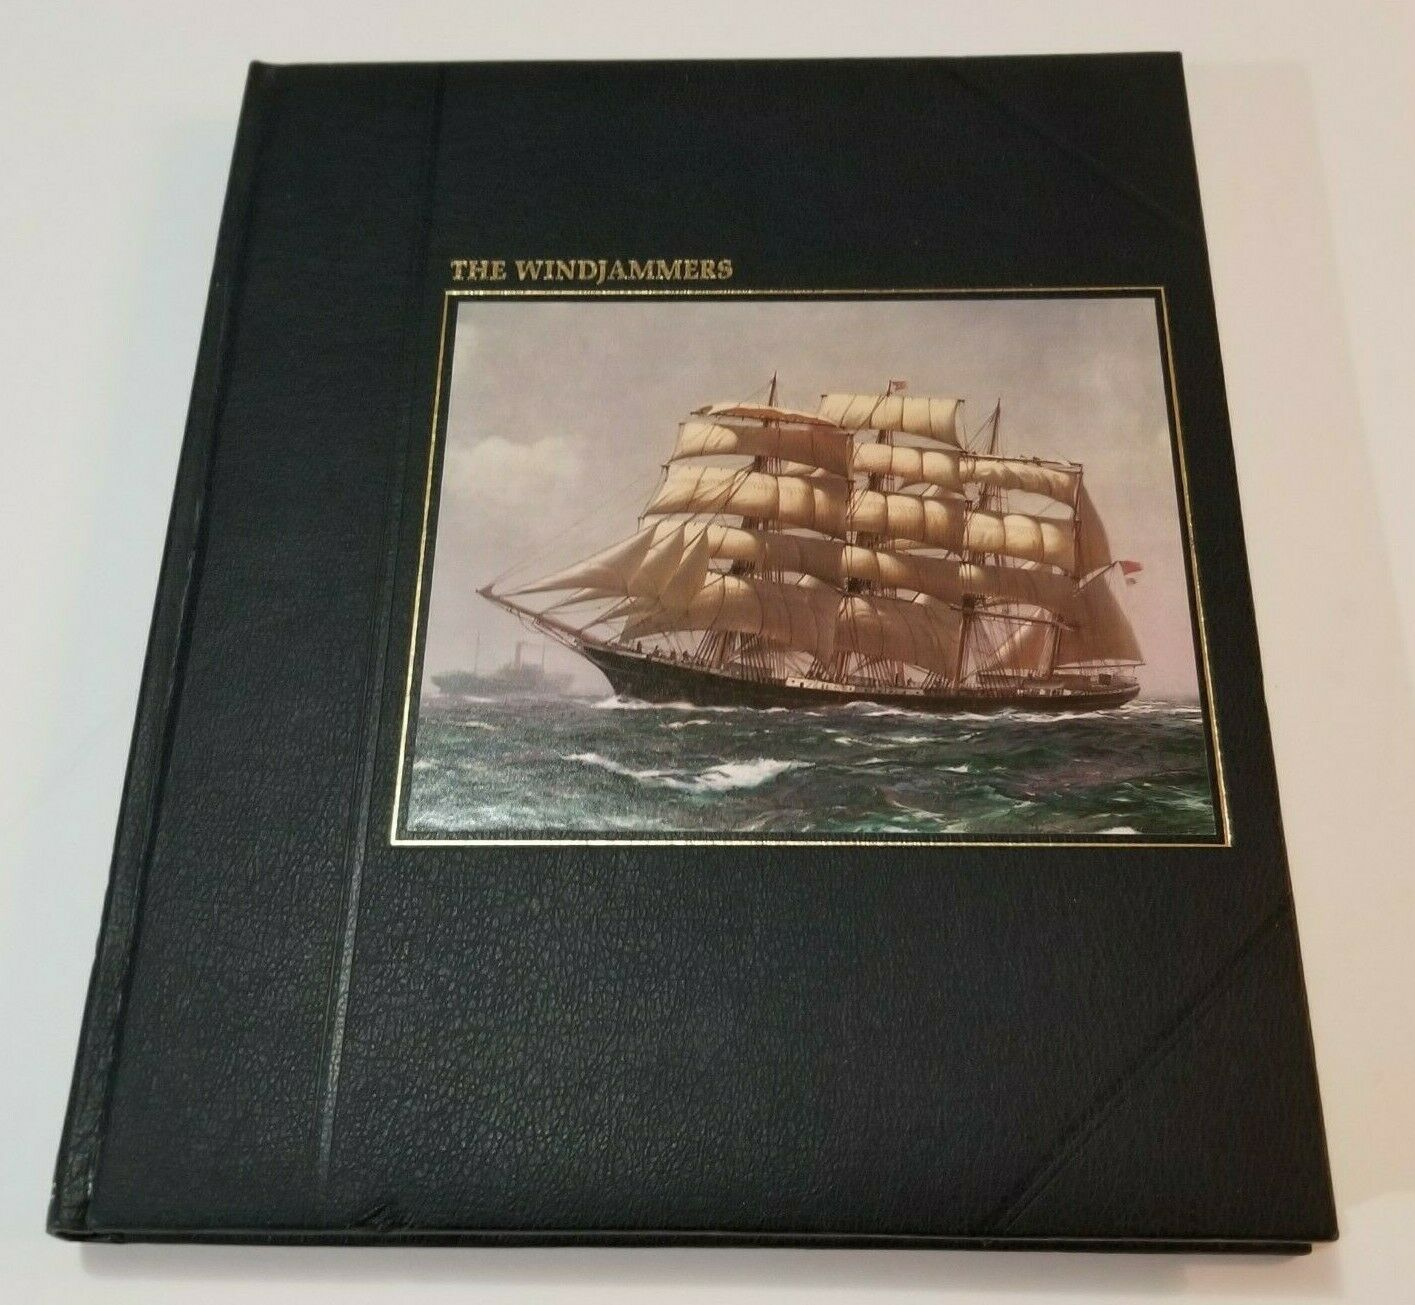 The Windjammers TIME-LIFE Books – The Seafarers Series 1979 Hardcover |